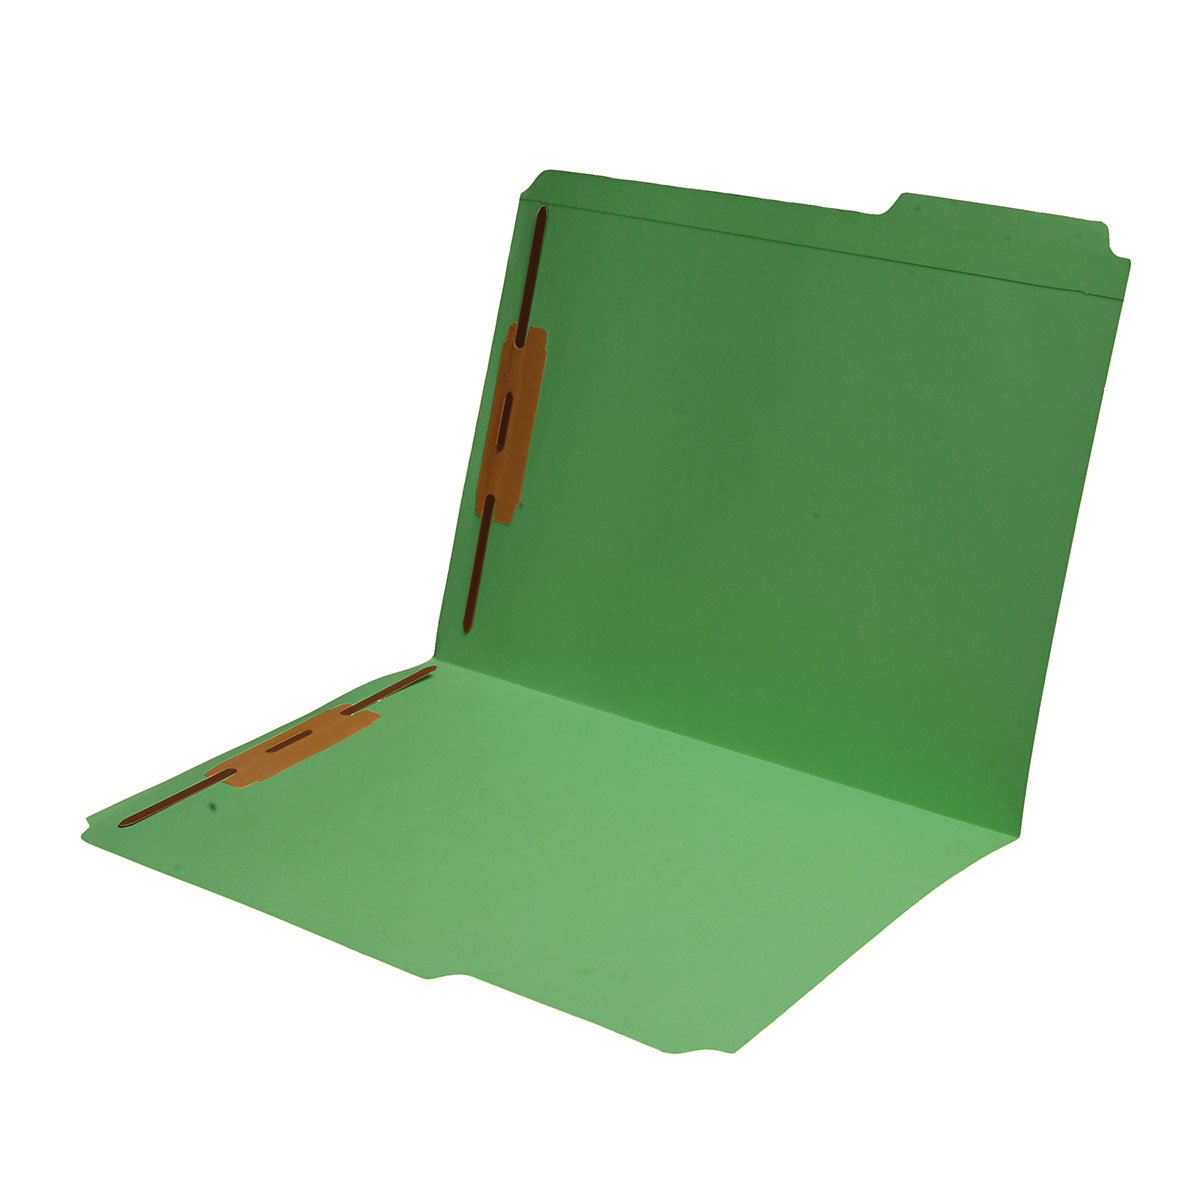 S-9042-GRN - 11 pt Green Folders, 1/3 Cut Reinforced Top Tab - Assorted, Letter Size, Fastener Pos #1 and #3 (Box of 50)